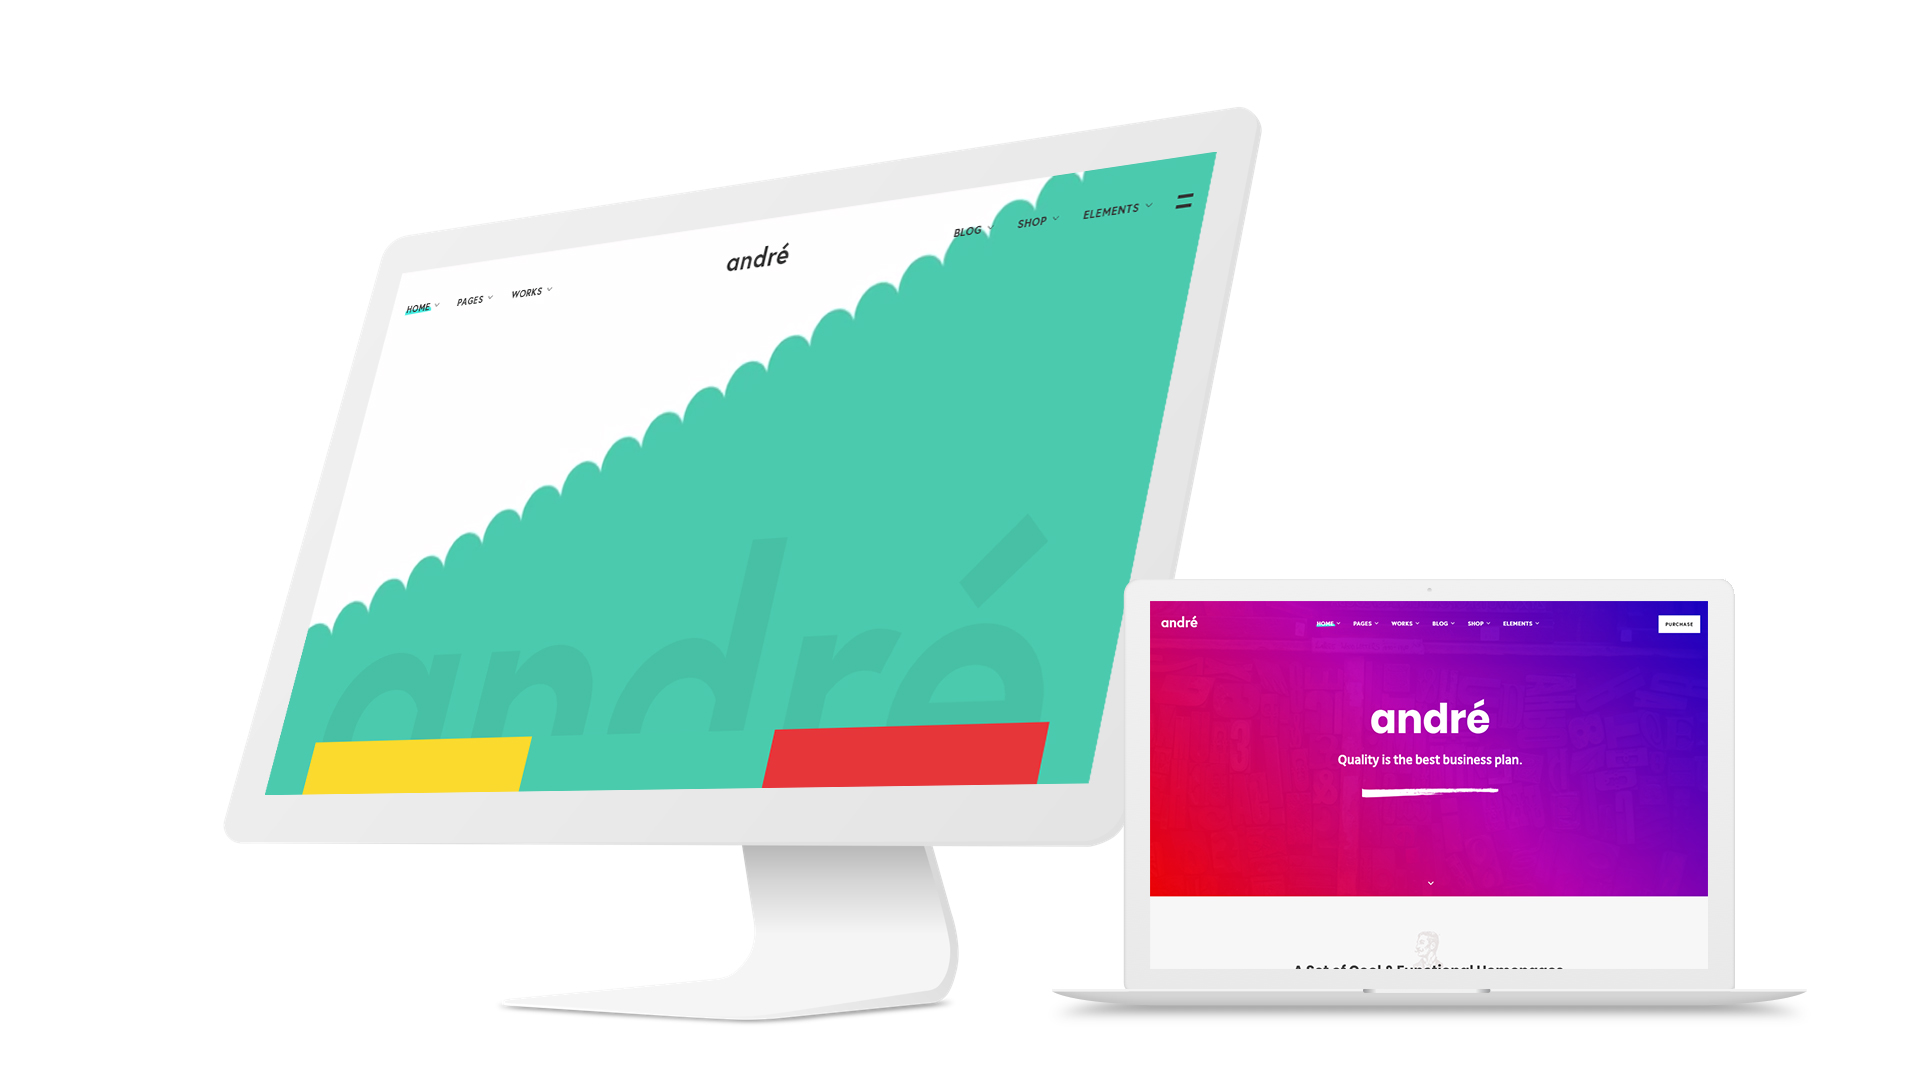 WordPress theme André - A Contemporary WordPress Theme for Small Business Owners and Creatives (Creative)